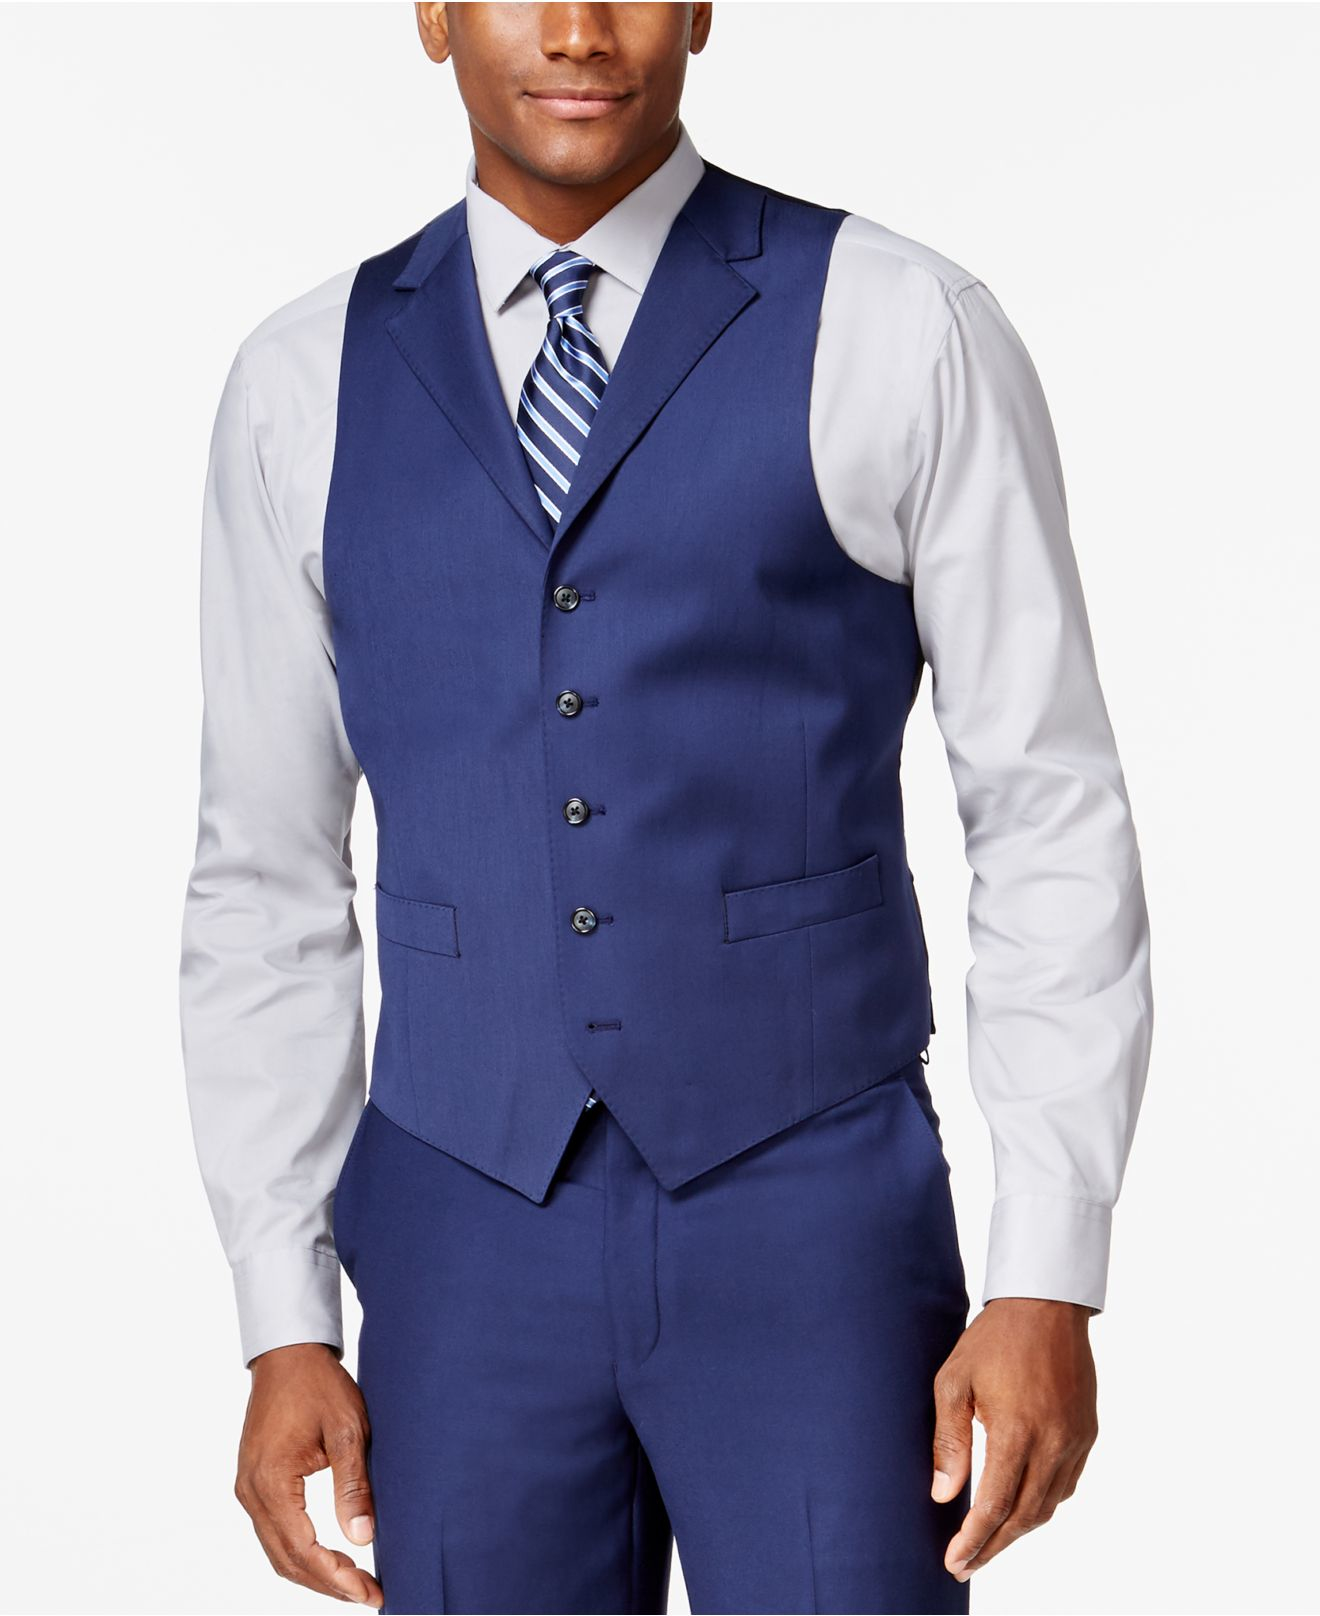 Sean john New Blue Solid Classic-fit Vest in Blue for Men - Save 10% | Lyst